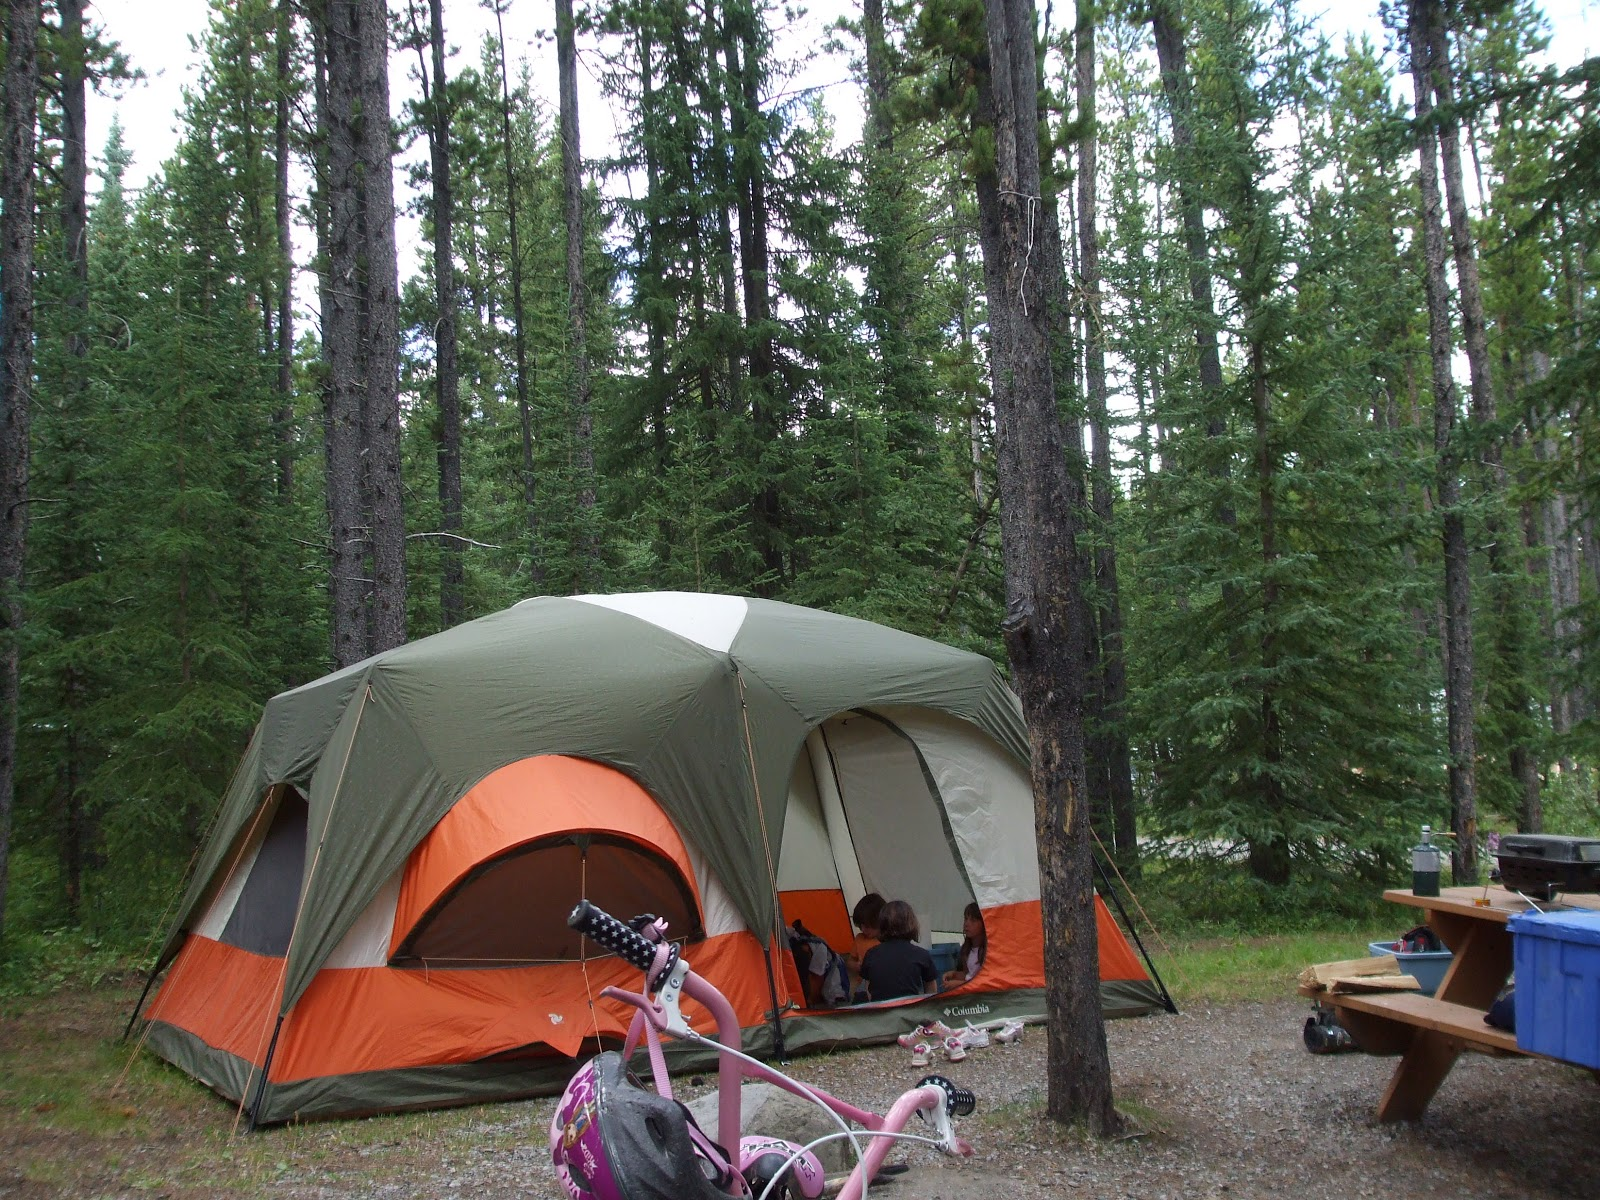 #CBIAS Canadian Tire C&ing & Freshening Up Our Camping Gear at Canadian Tire for May Long ...